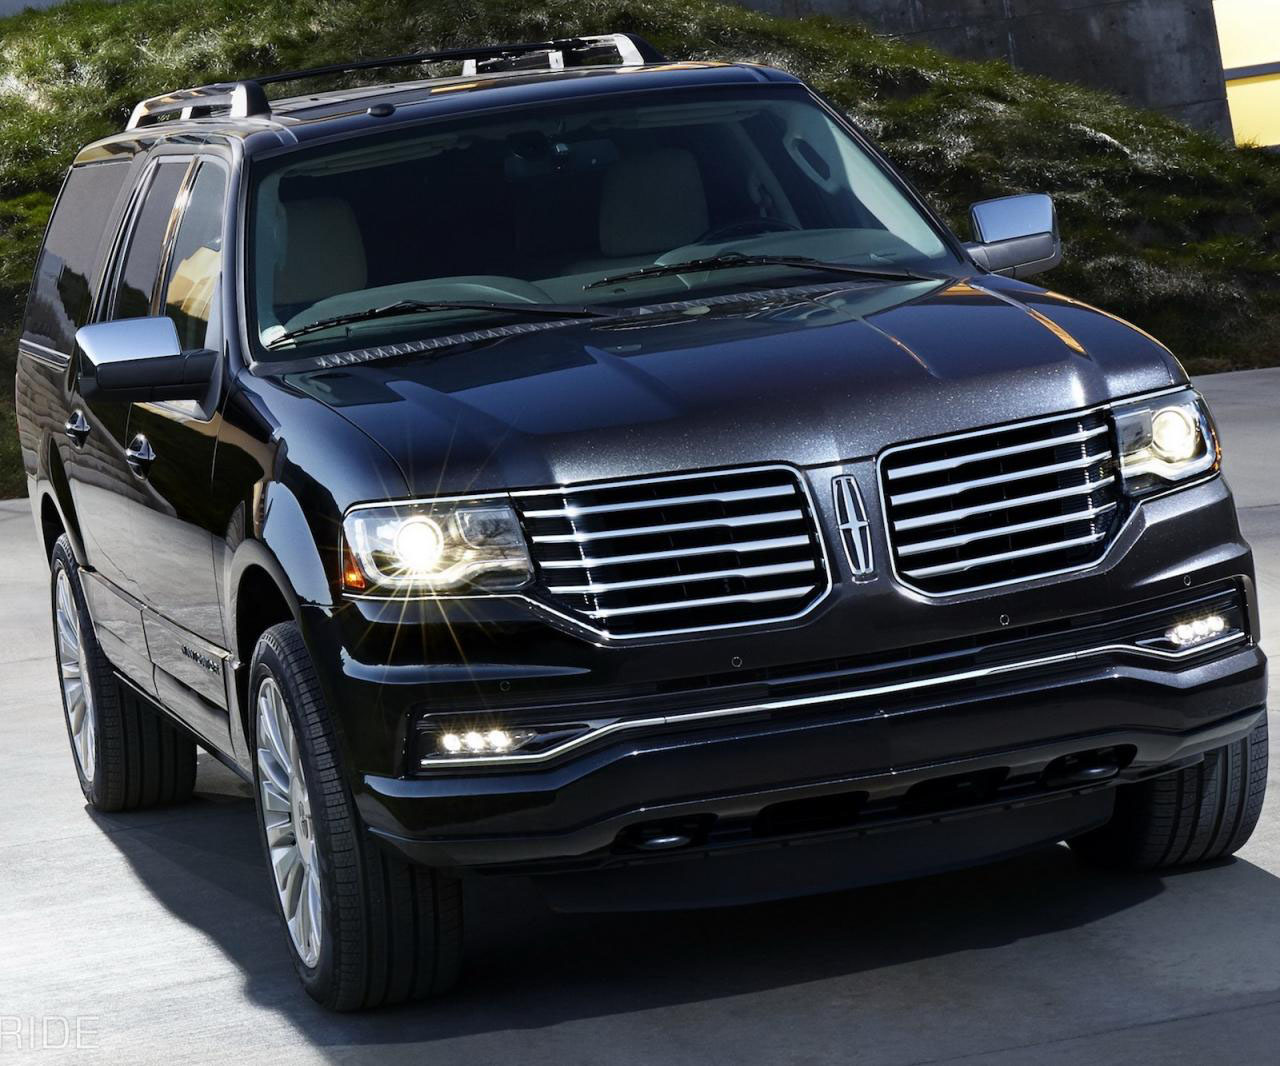 2017 Lincoln Navigator photo - 4